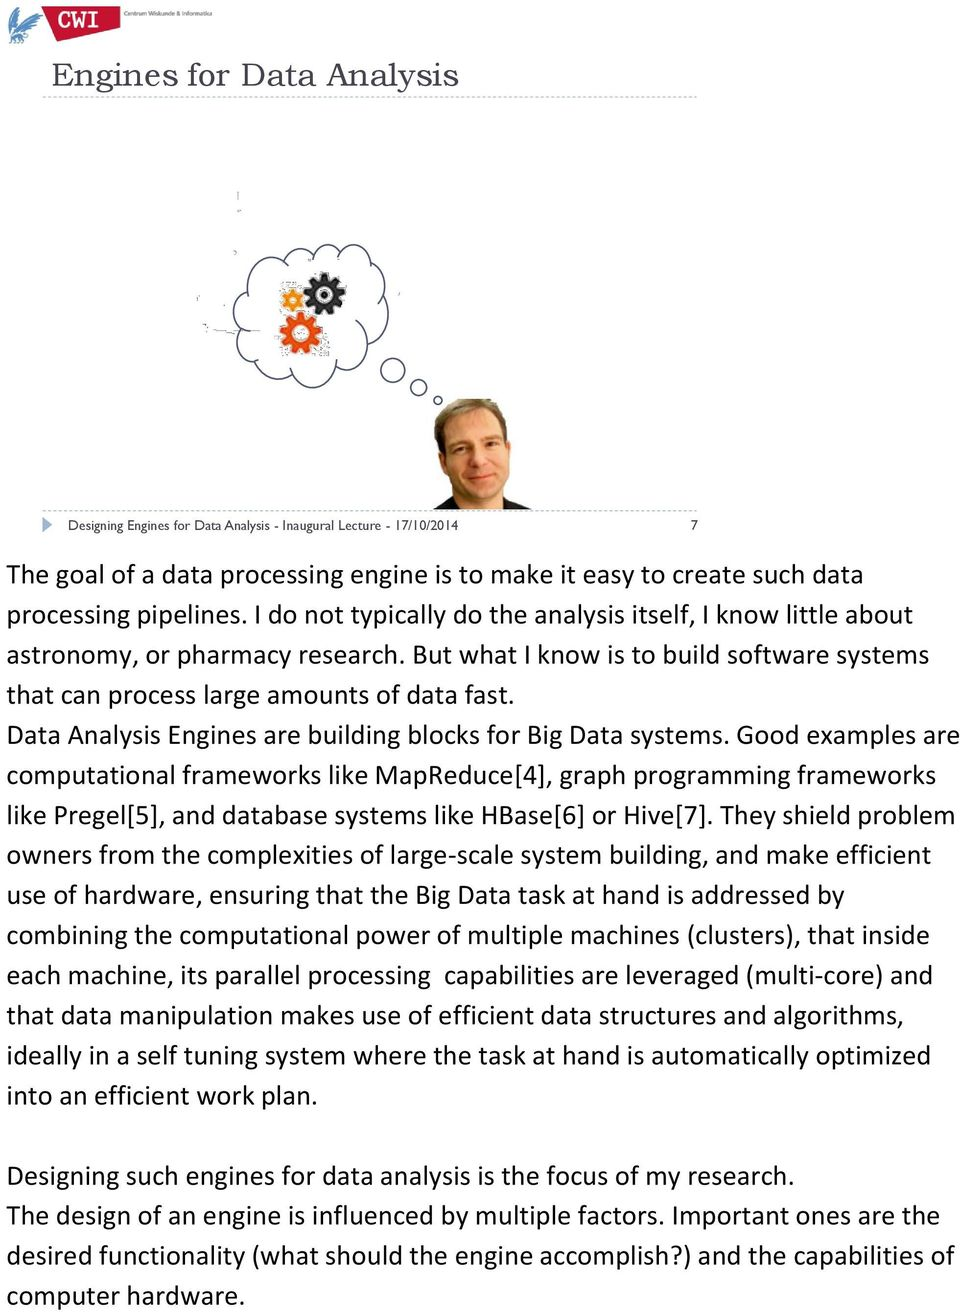 Data Analysis Engines are building blocks for Big Data systems.